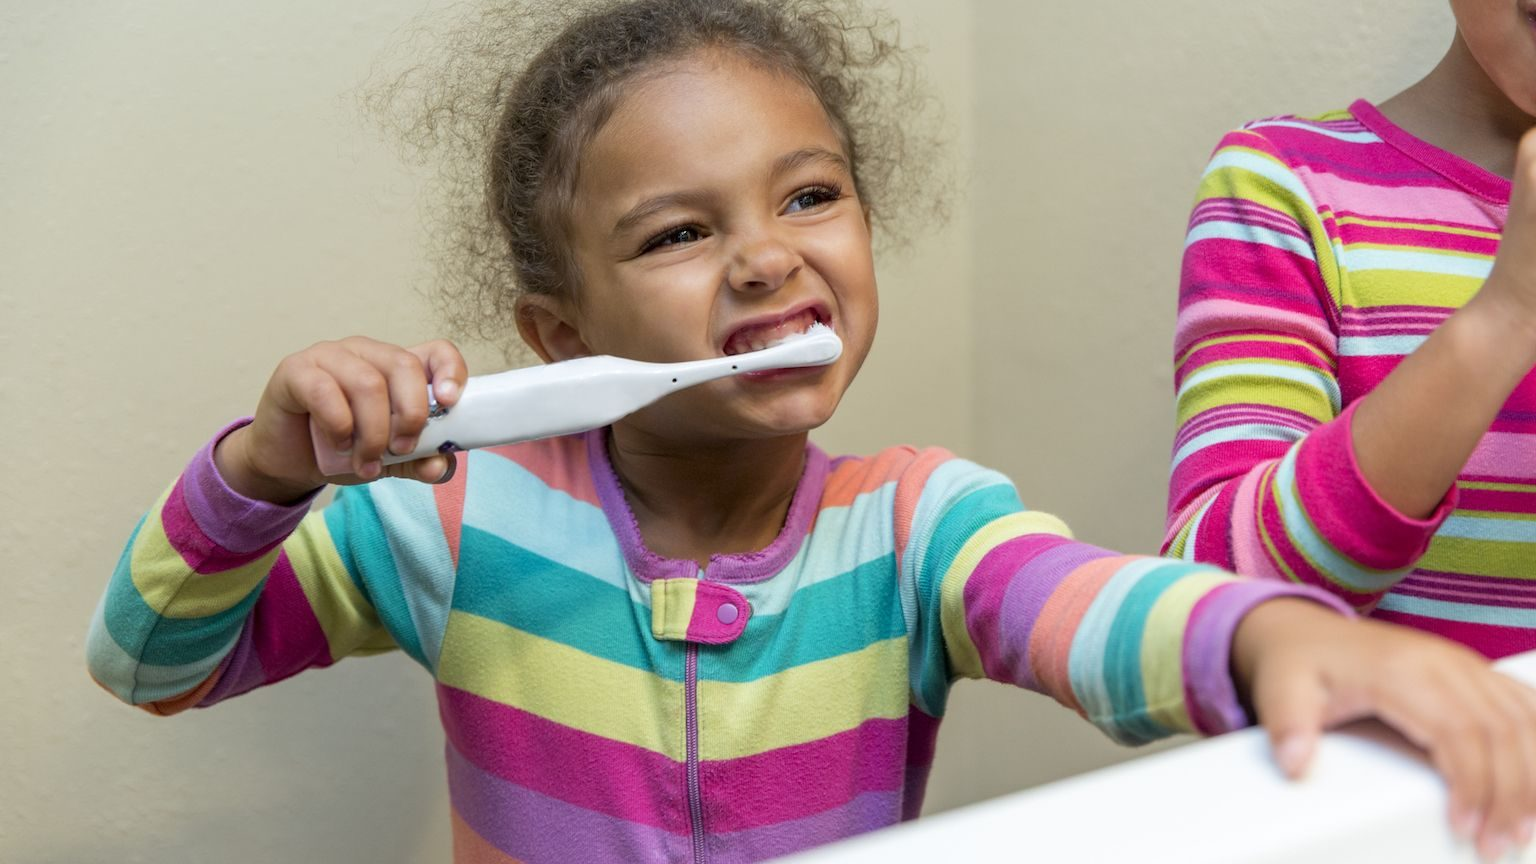 A little girl in bright pyjamas brushing her teeth in front of a mirror